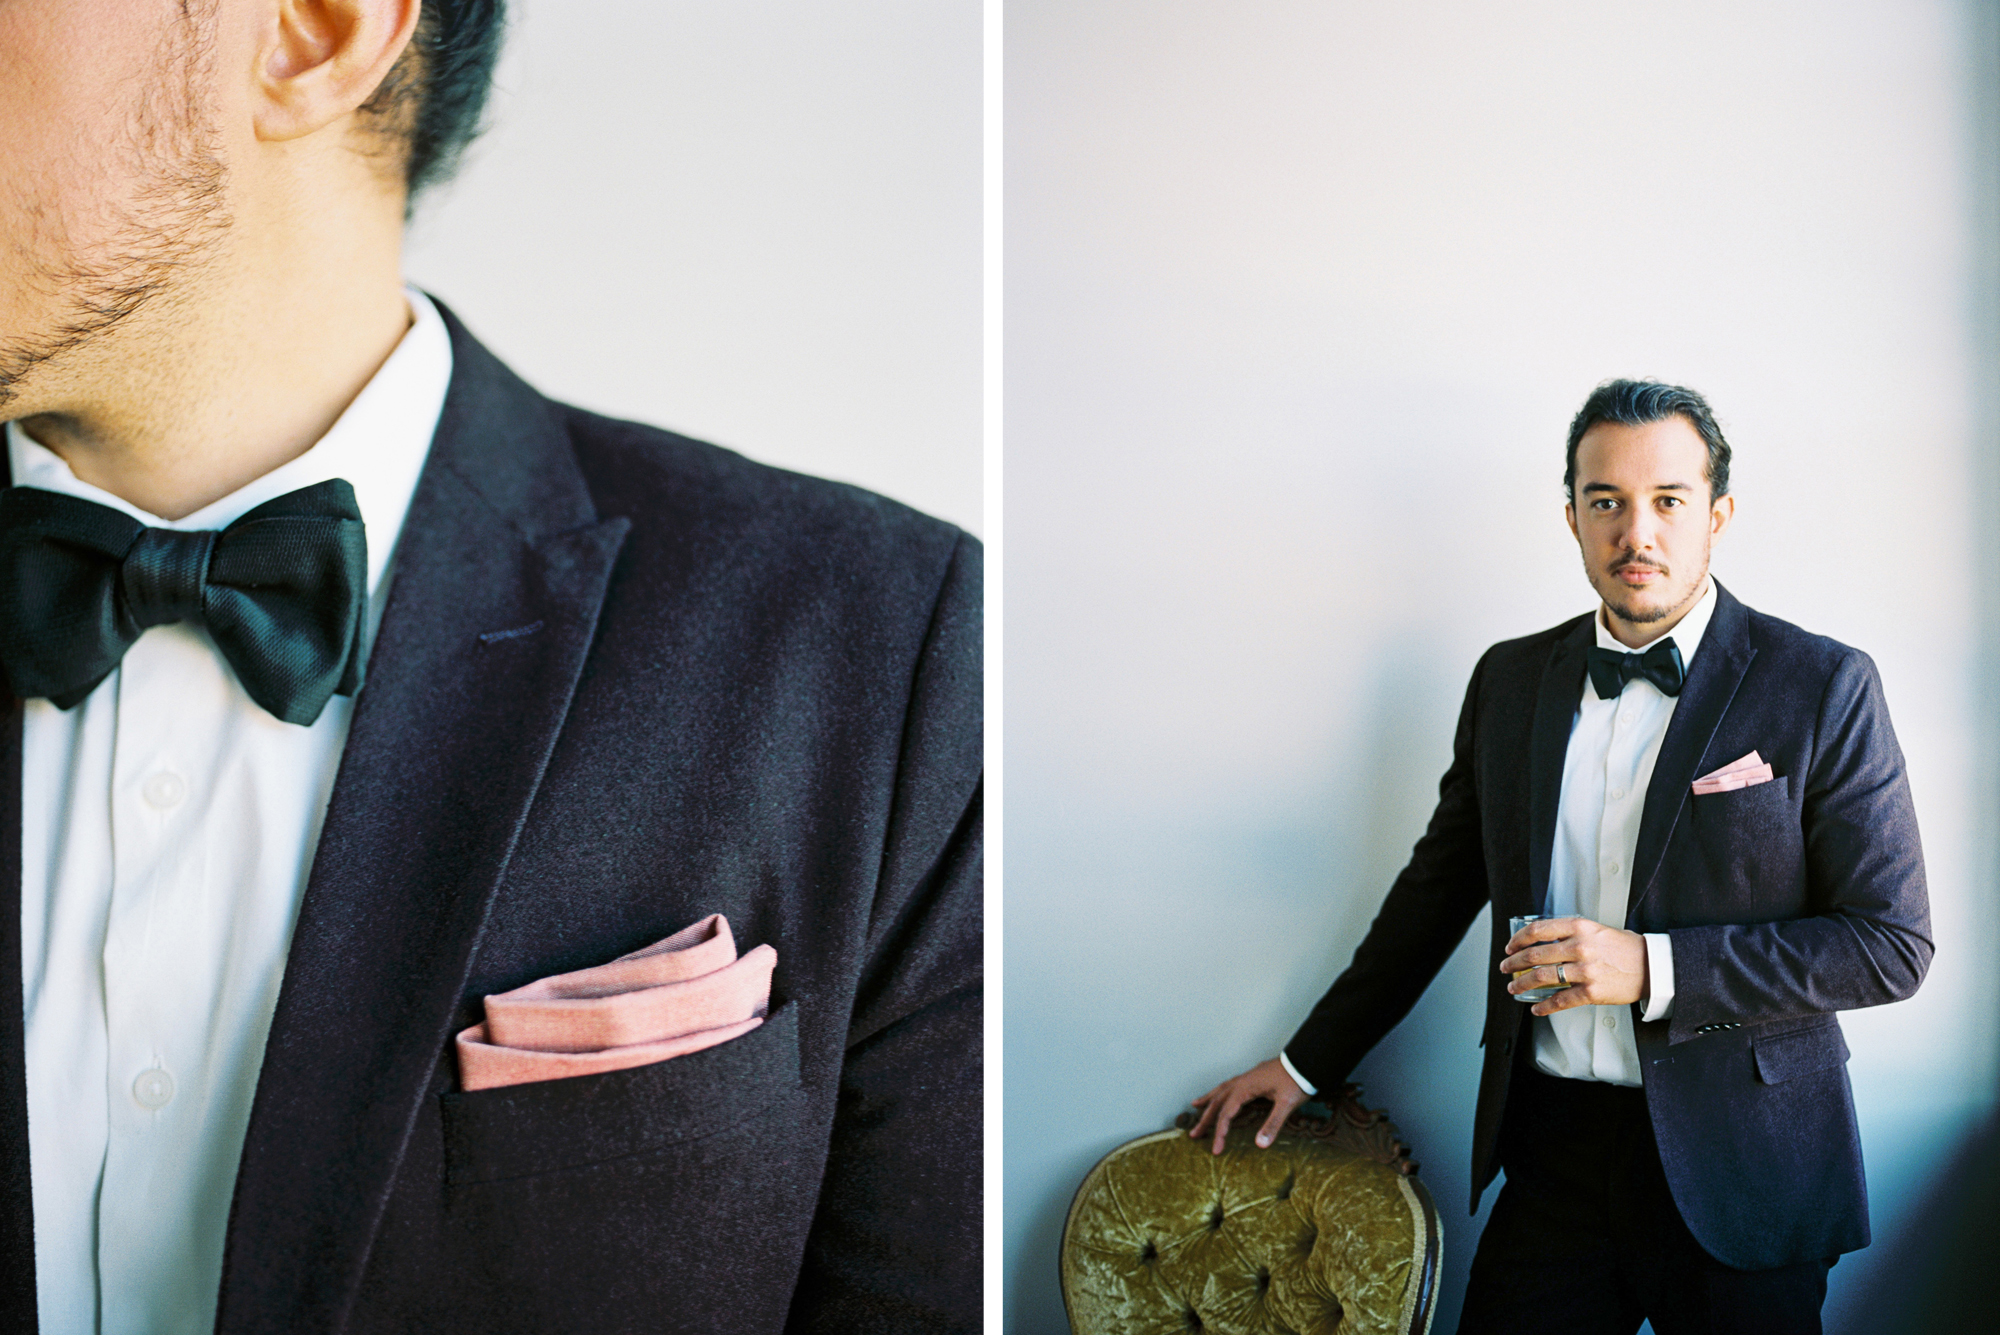 alexandra-elise-photography-mens-style-groom-style-film-wedding-photography-010